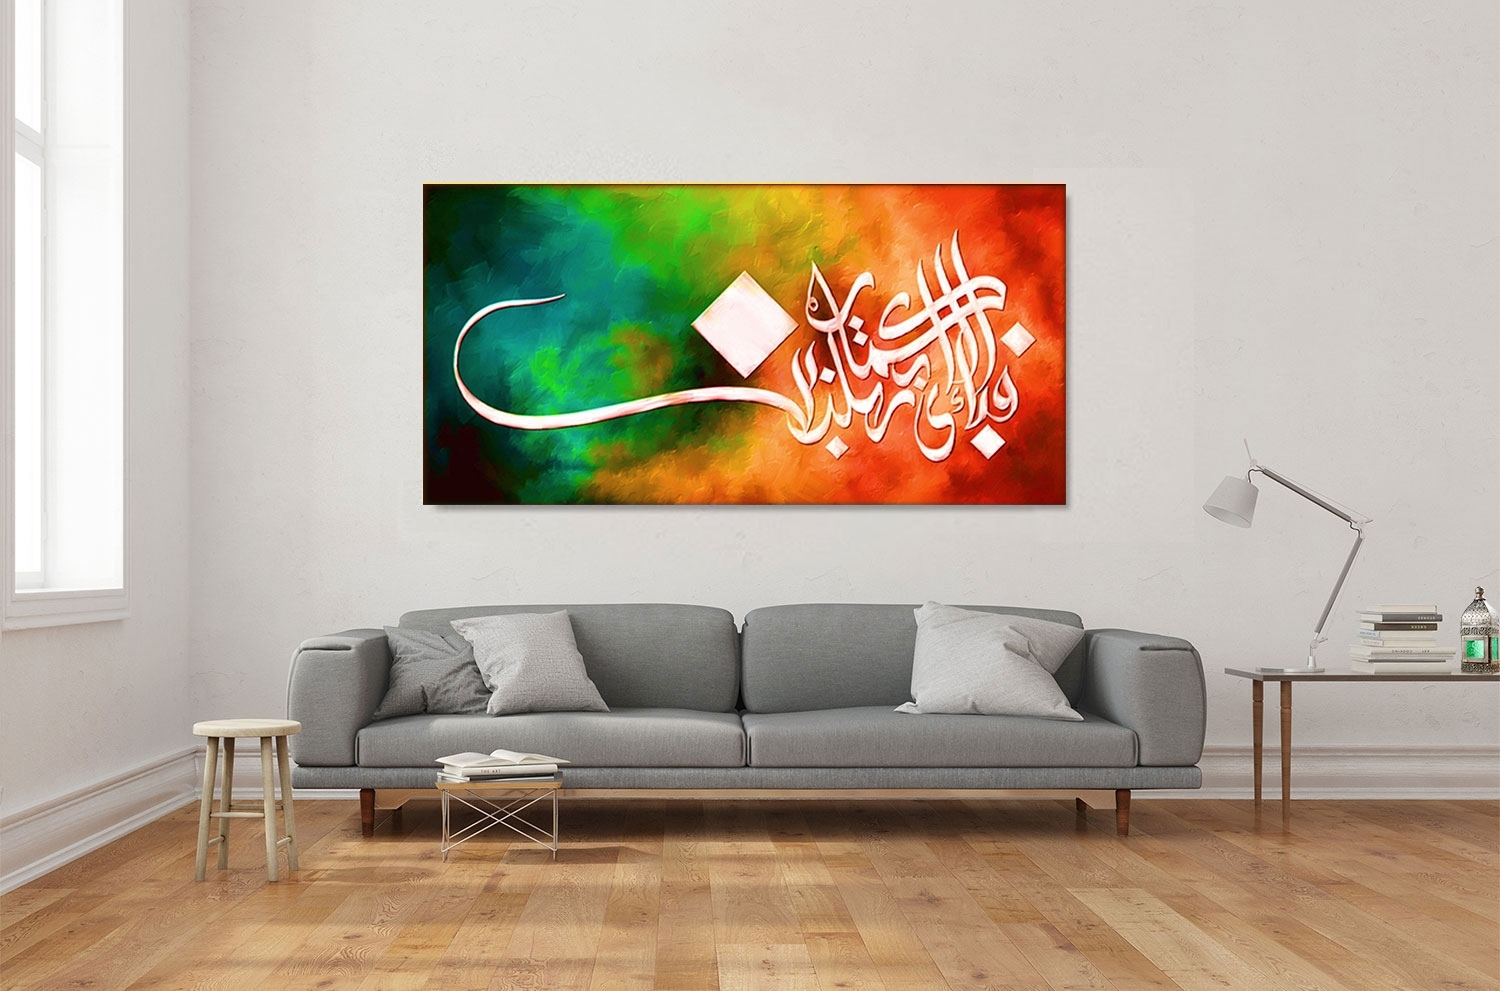 Canvas Prints Dubai | Canvas Printing Dubai | Canvases Dubai In Most Current Dubai Canvas Wall Art (View 9 of 15)